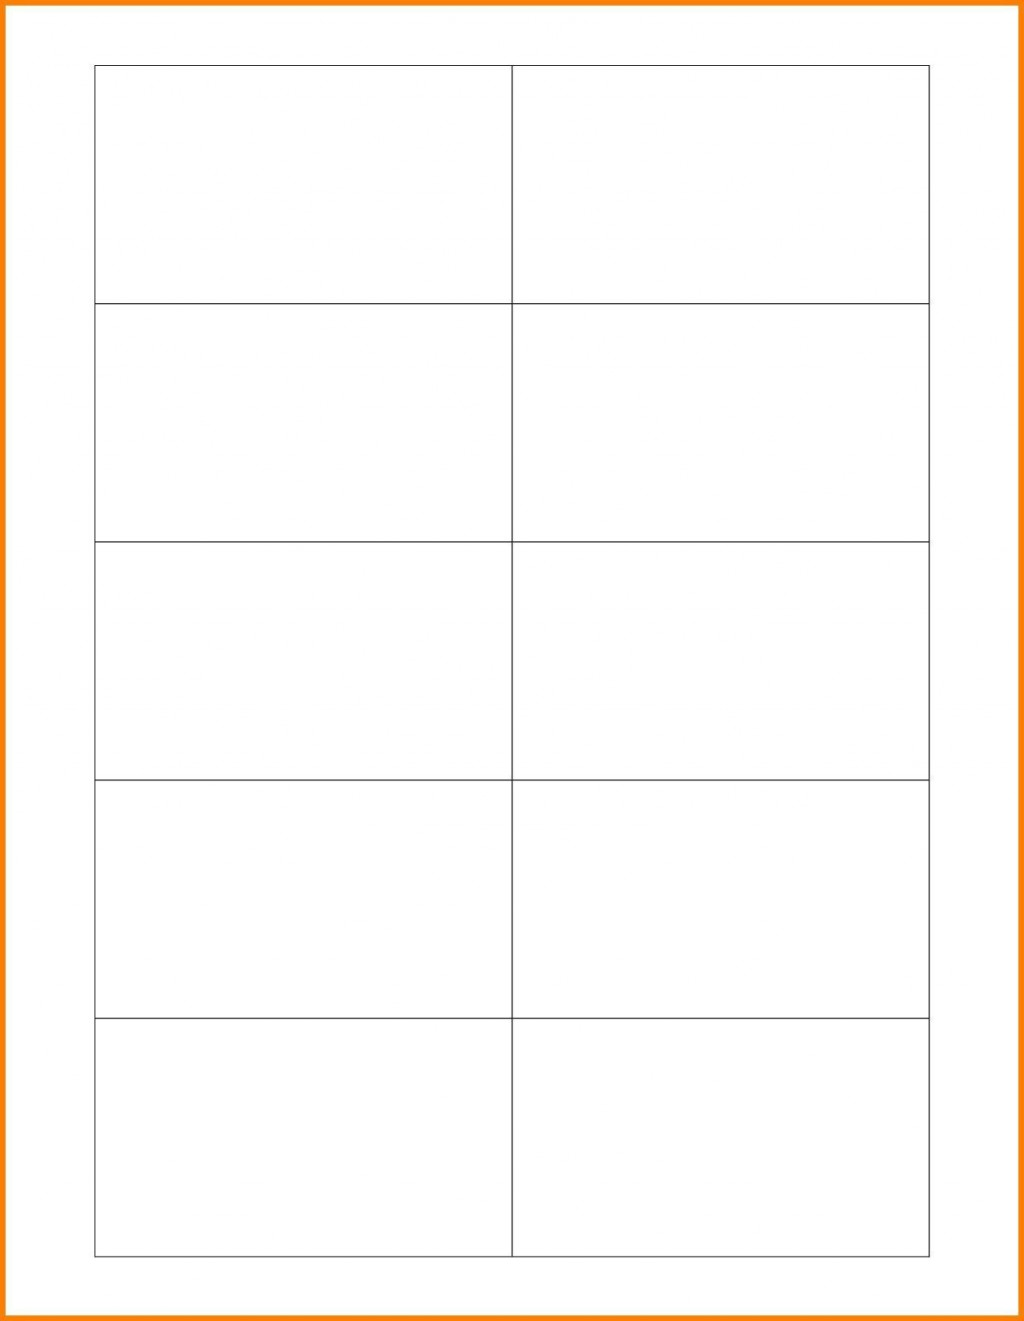 007 Astounding Free Printable Blank Busines Card Template For Word Example Large